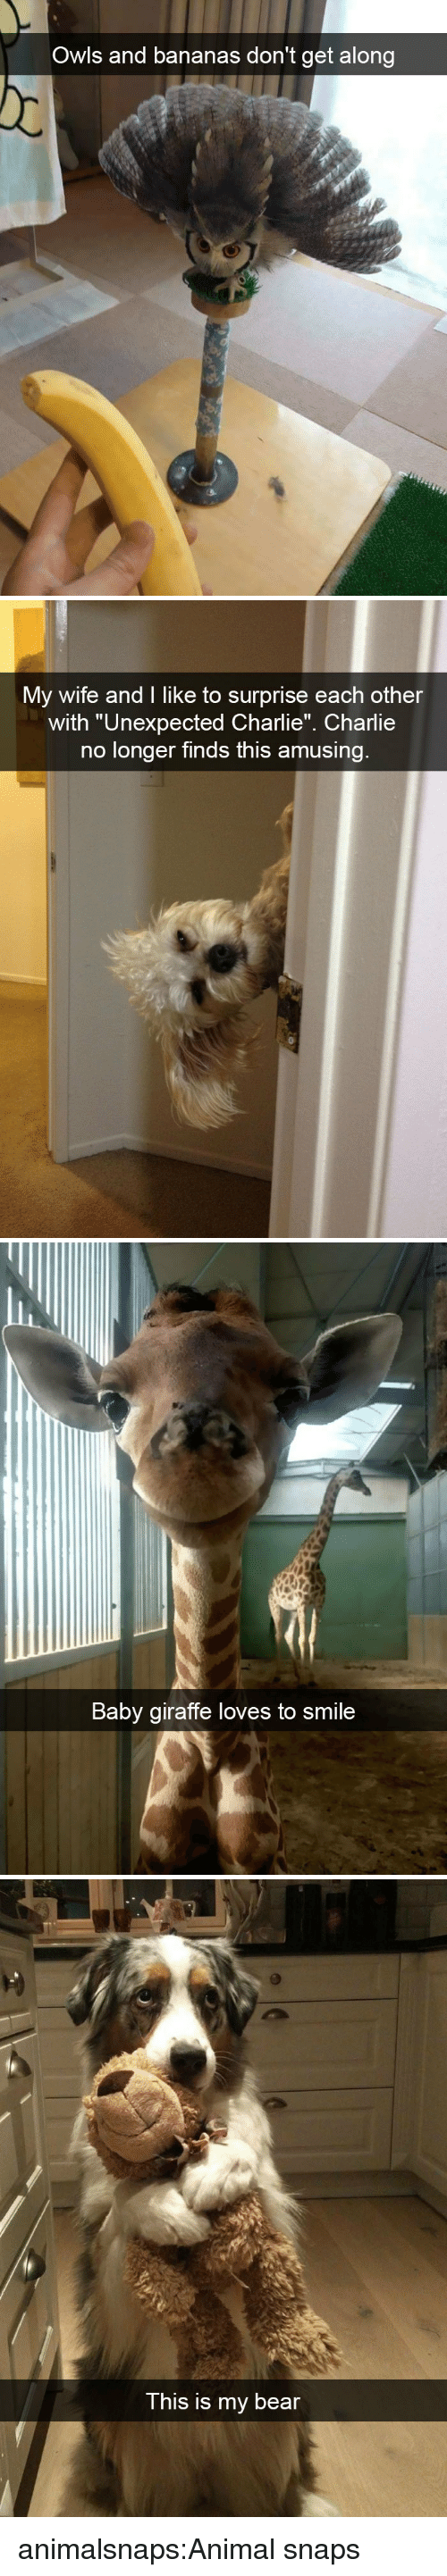 """Charlie, Target, and Tumblr: Owls and bananas don't get along   My wife and I like to surprise each other  with """"Unexpected Charlie"""". Charlie  no longer finds this amusing   Baby giraffe loves to smile   This is my bear animalsnaps:Animal snaps"""